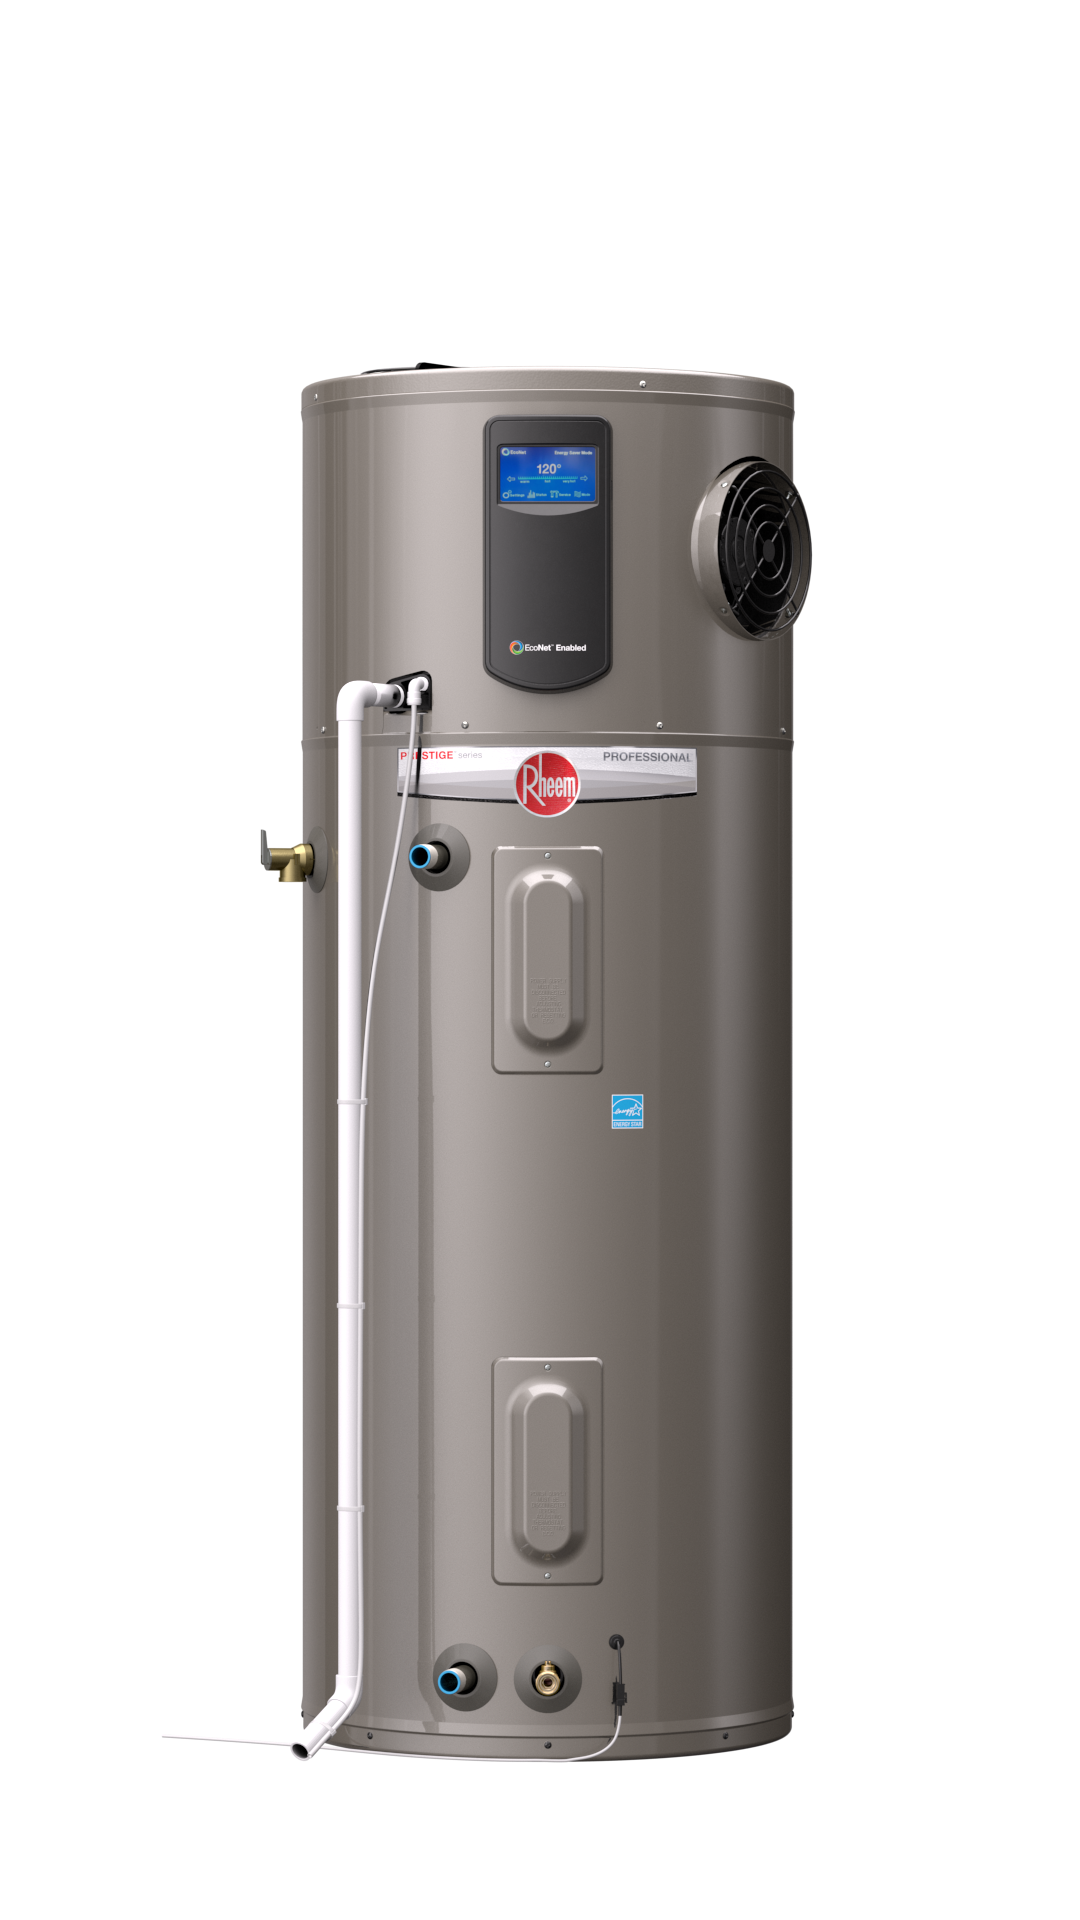 New Hot Water Heater From Rheem Reduces Energy Use By 73 Builder Magazine Heaters Products